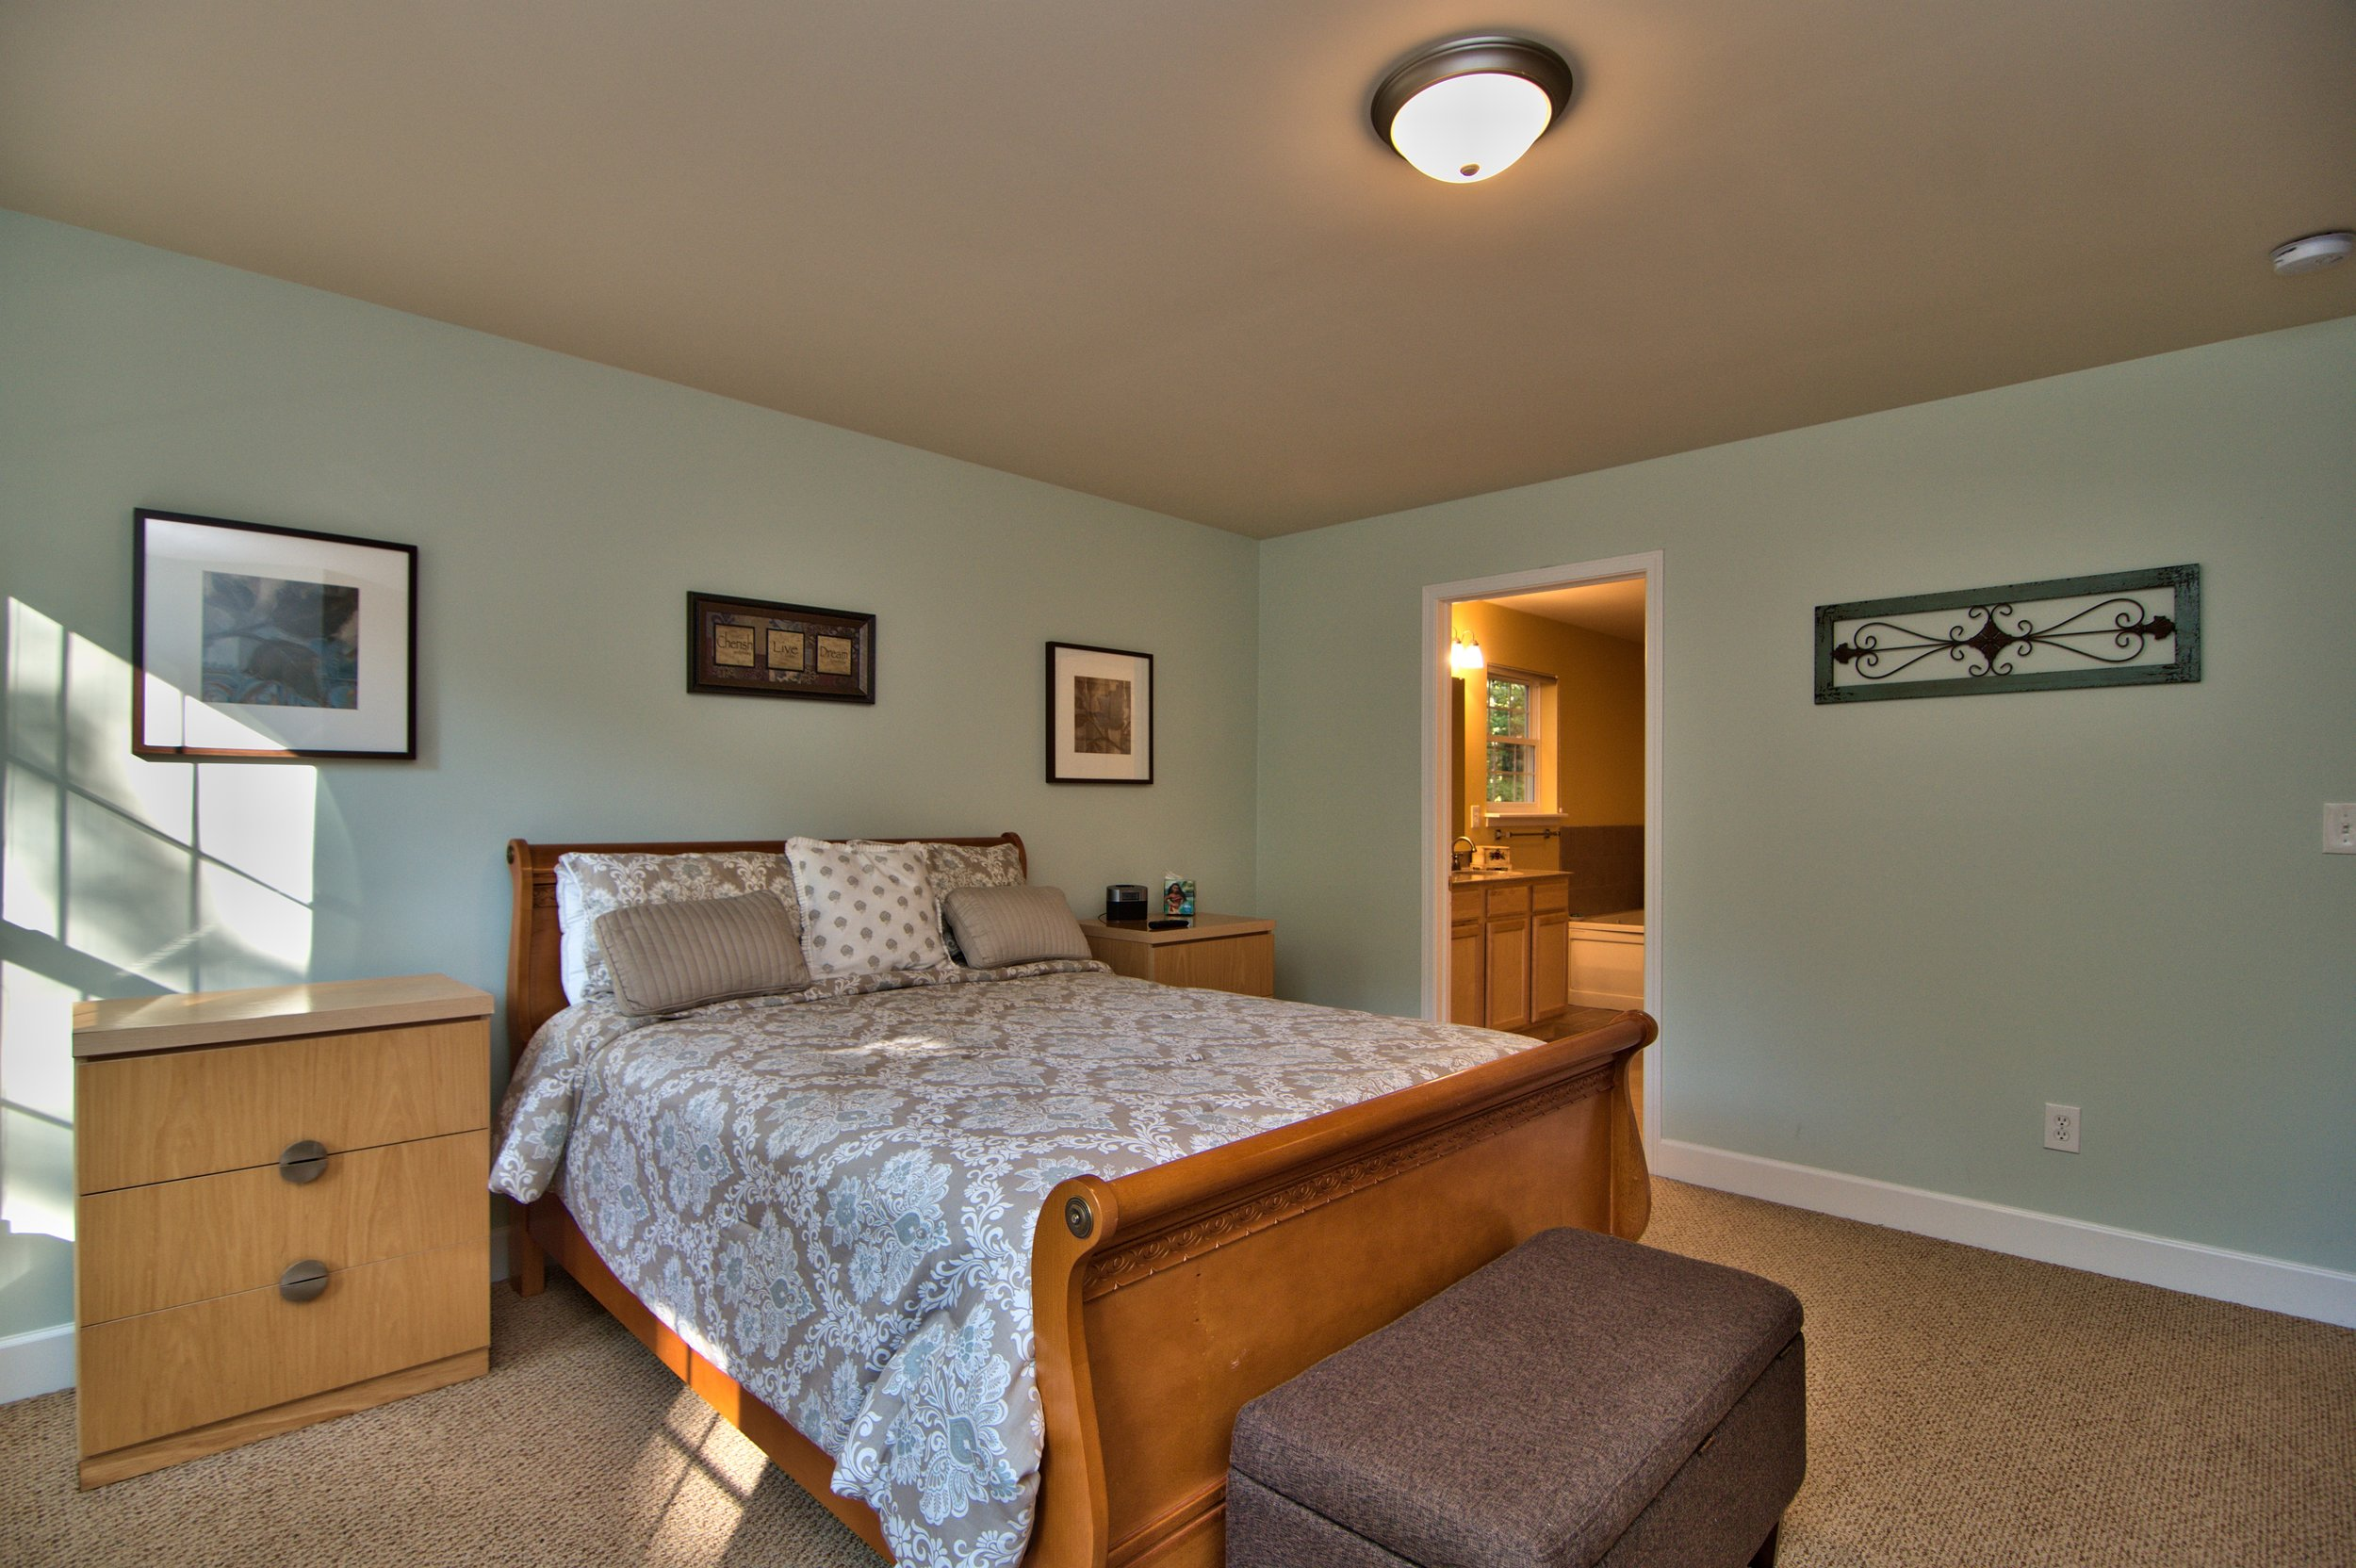 Master Bedroom View 2.jpg